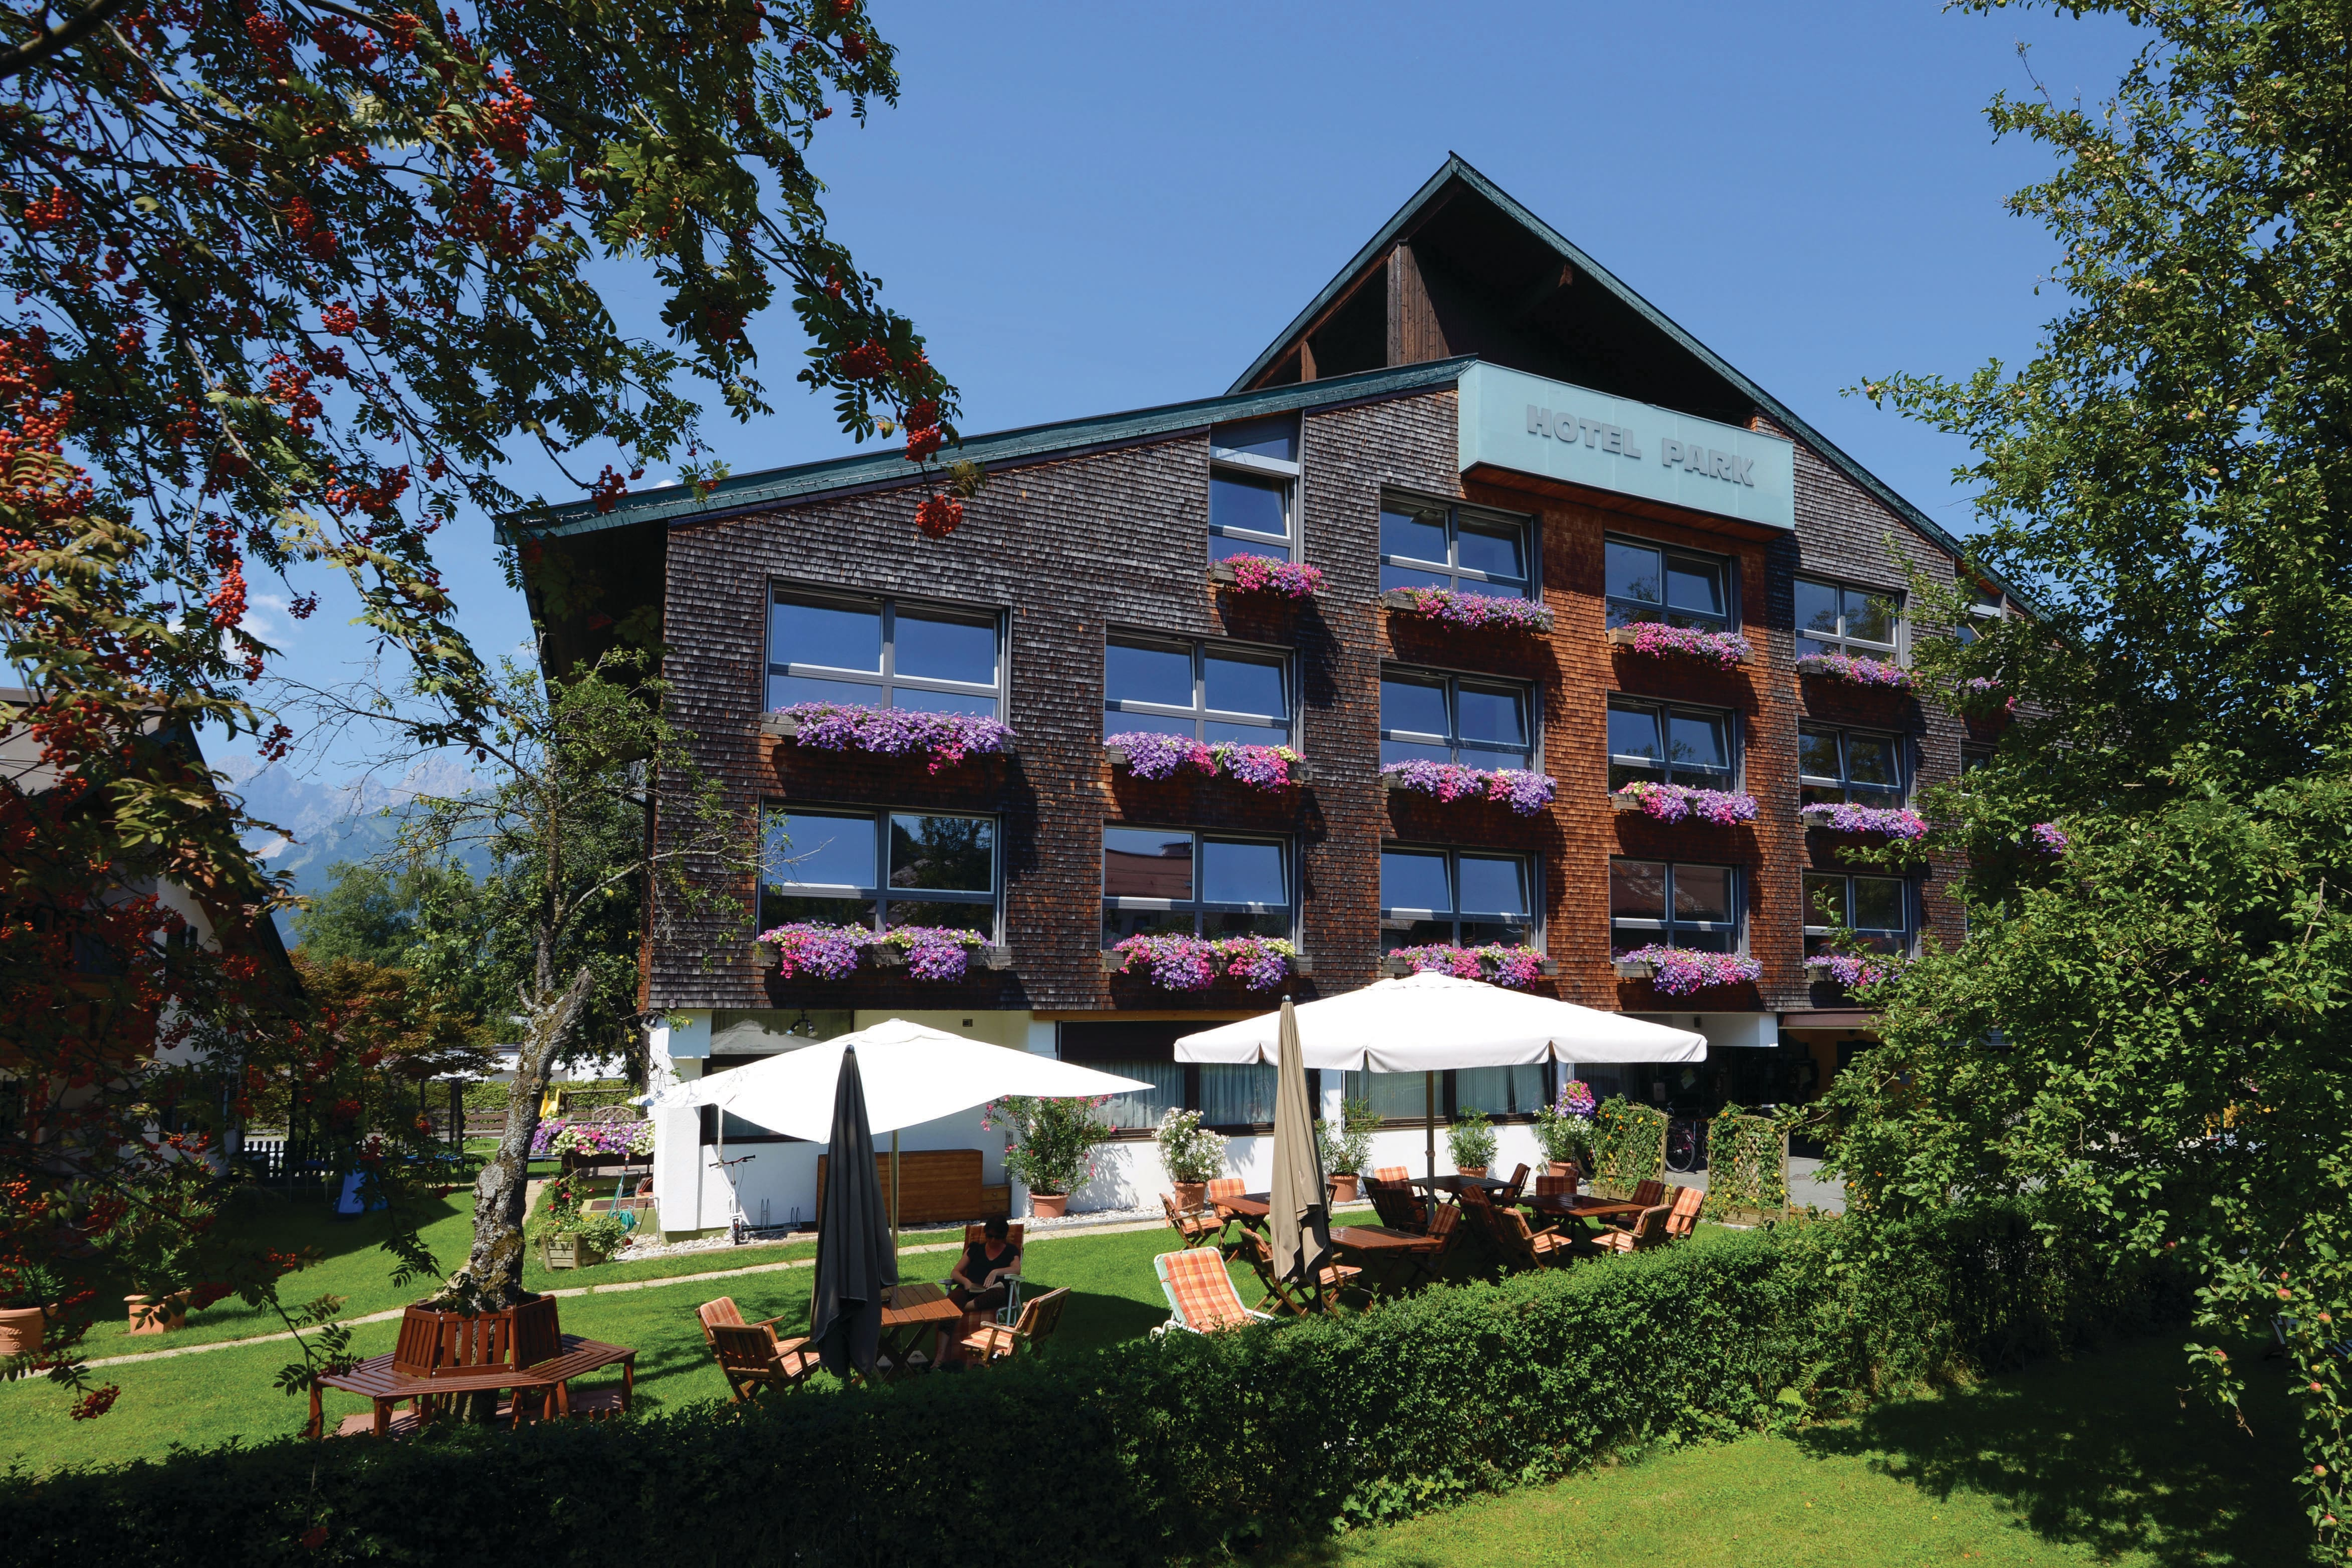 Exterior of the Hotel Park